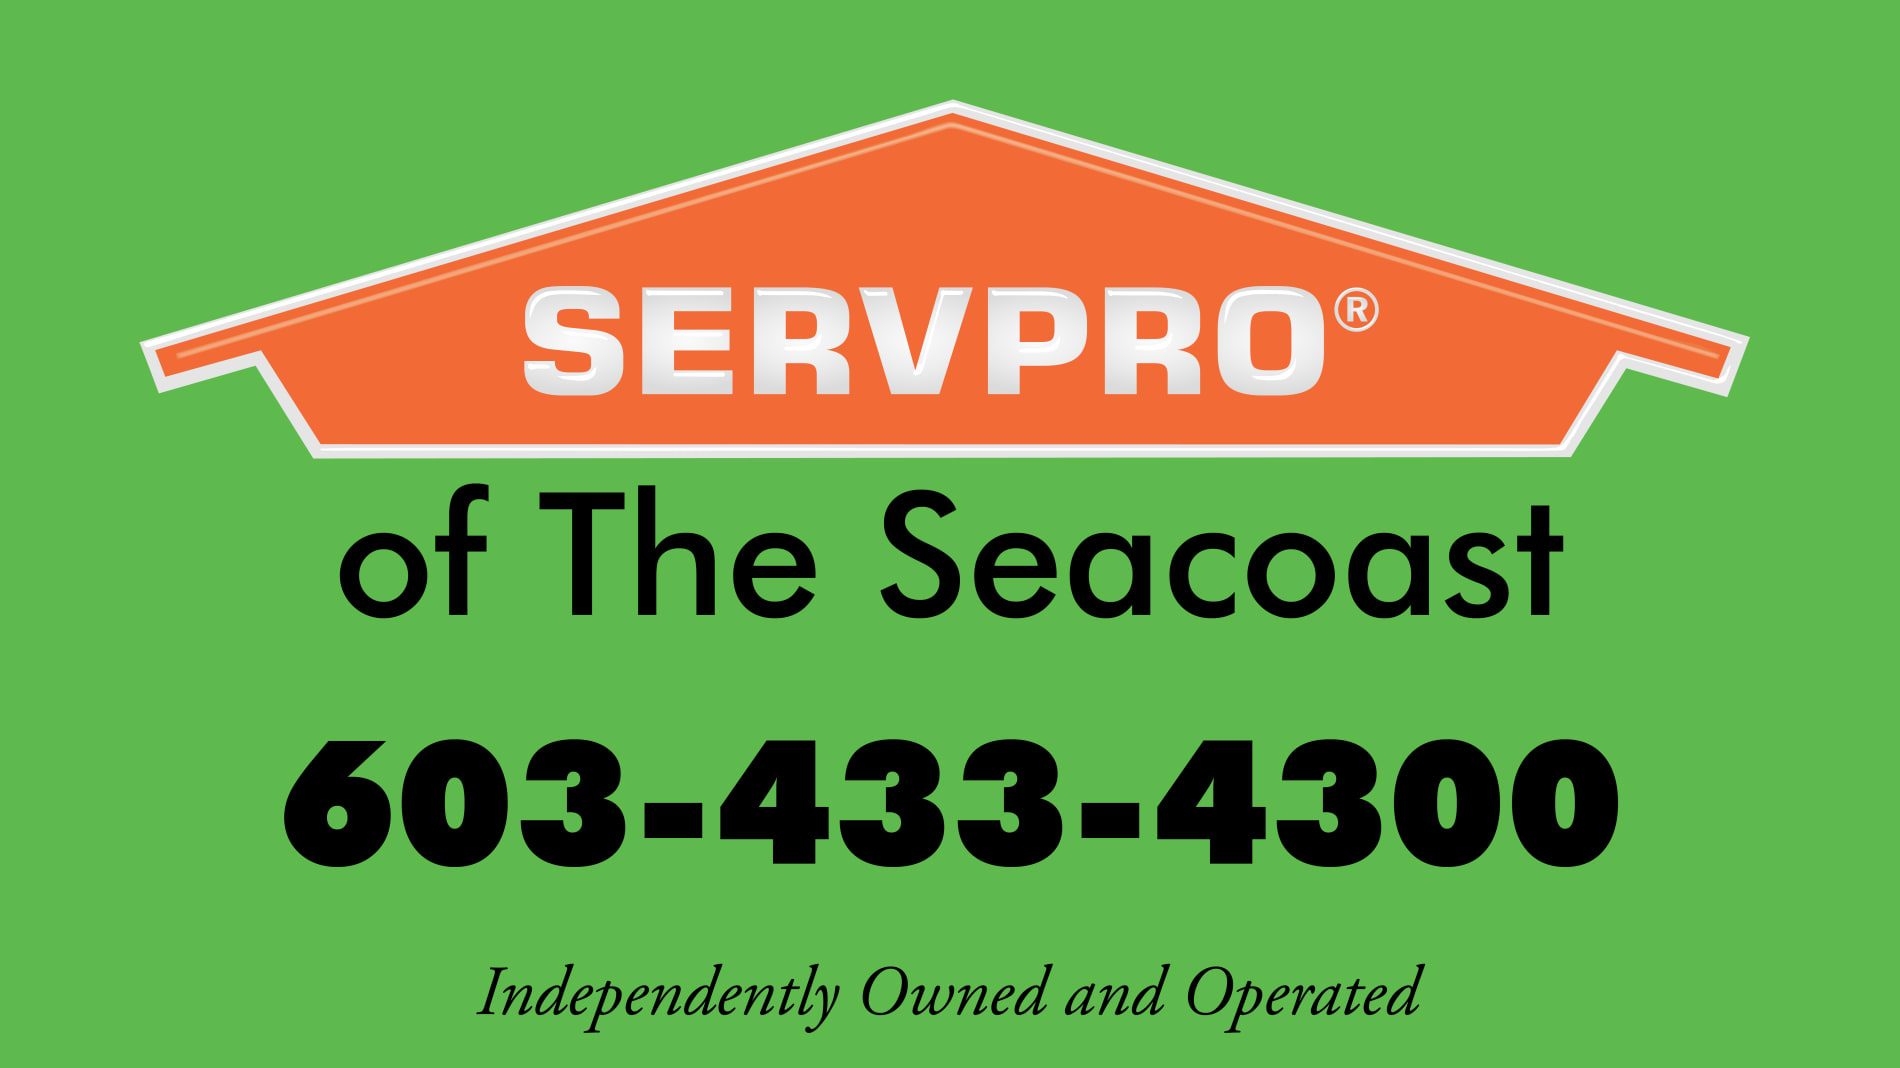 Servpro-of-the-Seacoast-w1900.jpg